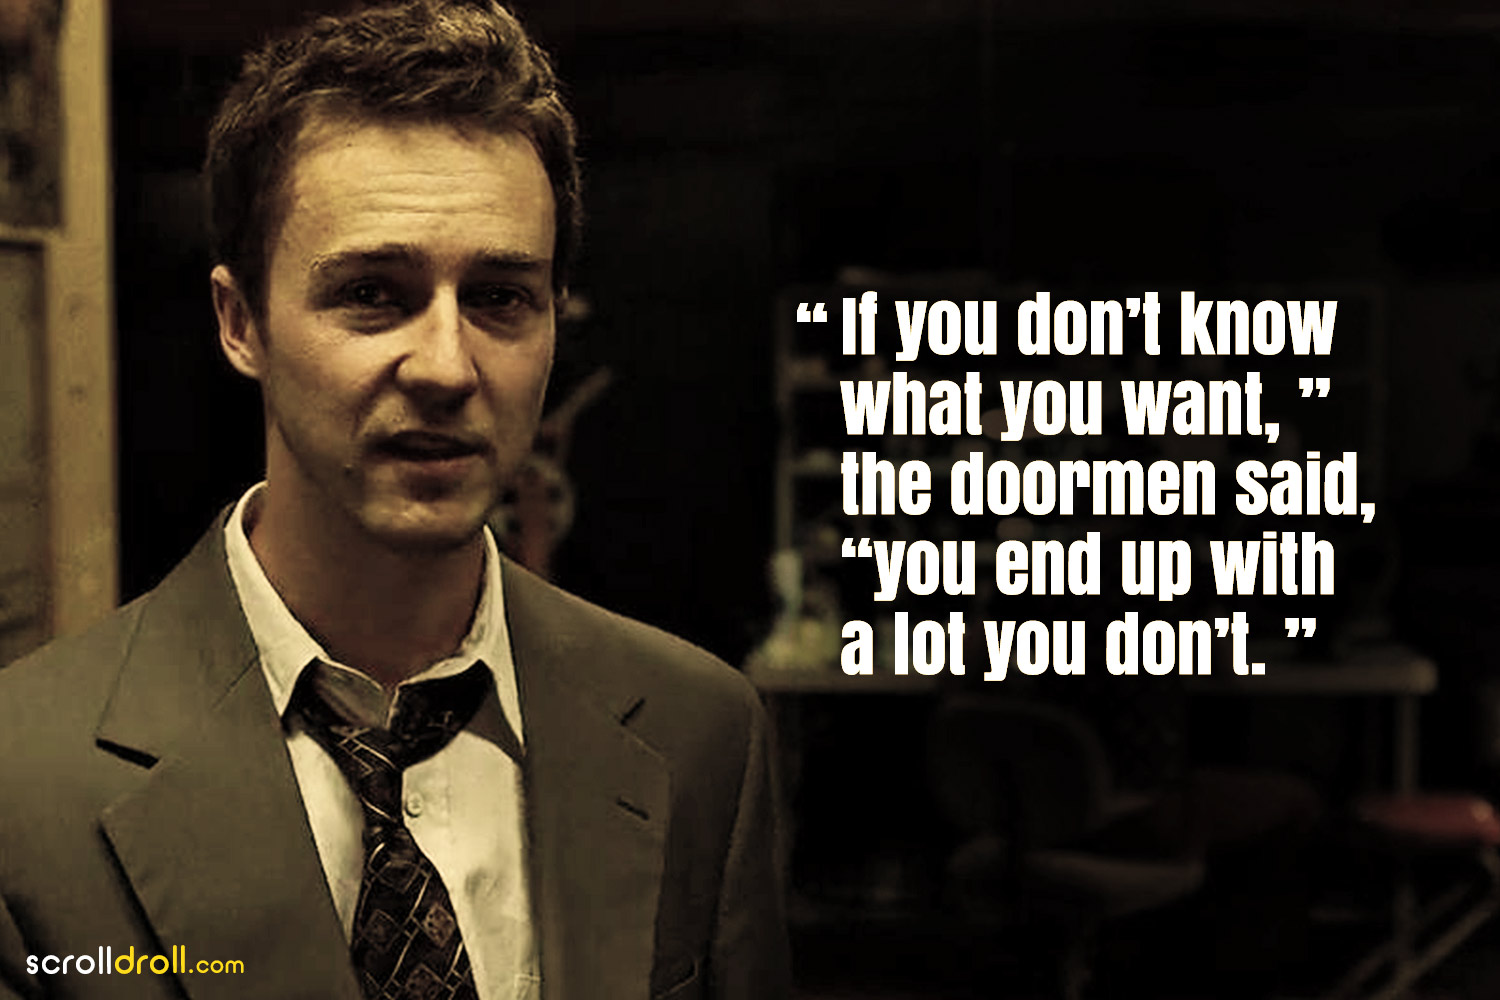 Fight Club Quotes-If you dont't know what you want.'' the doormen said,''you end up with a lot you don't